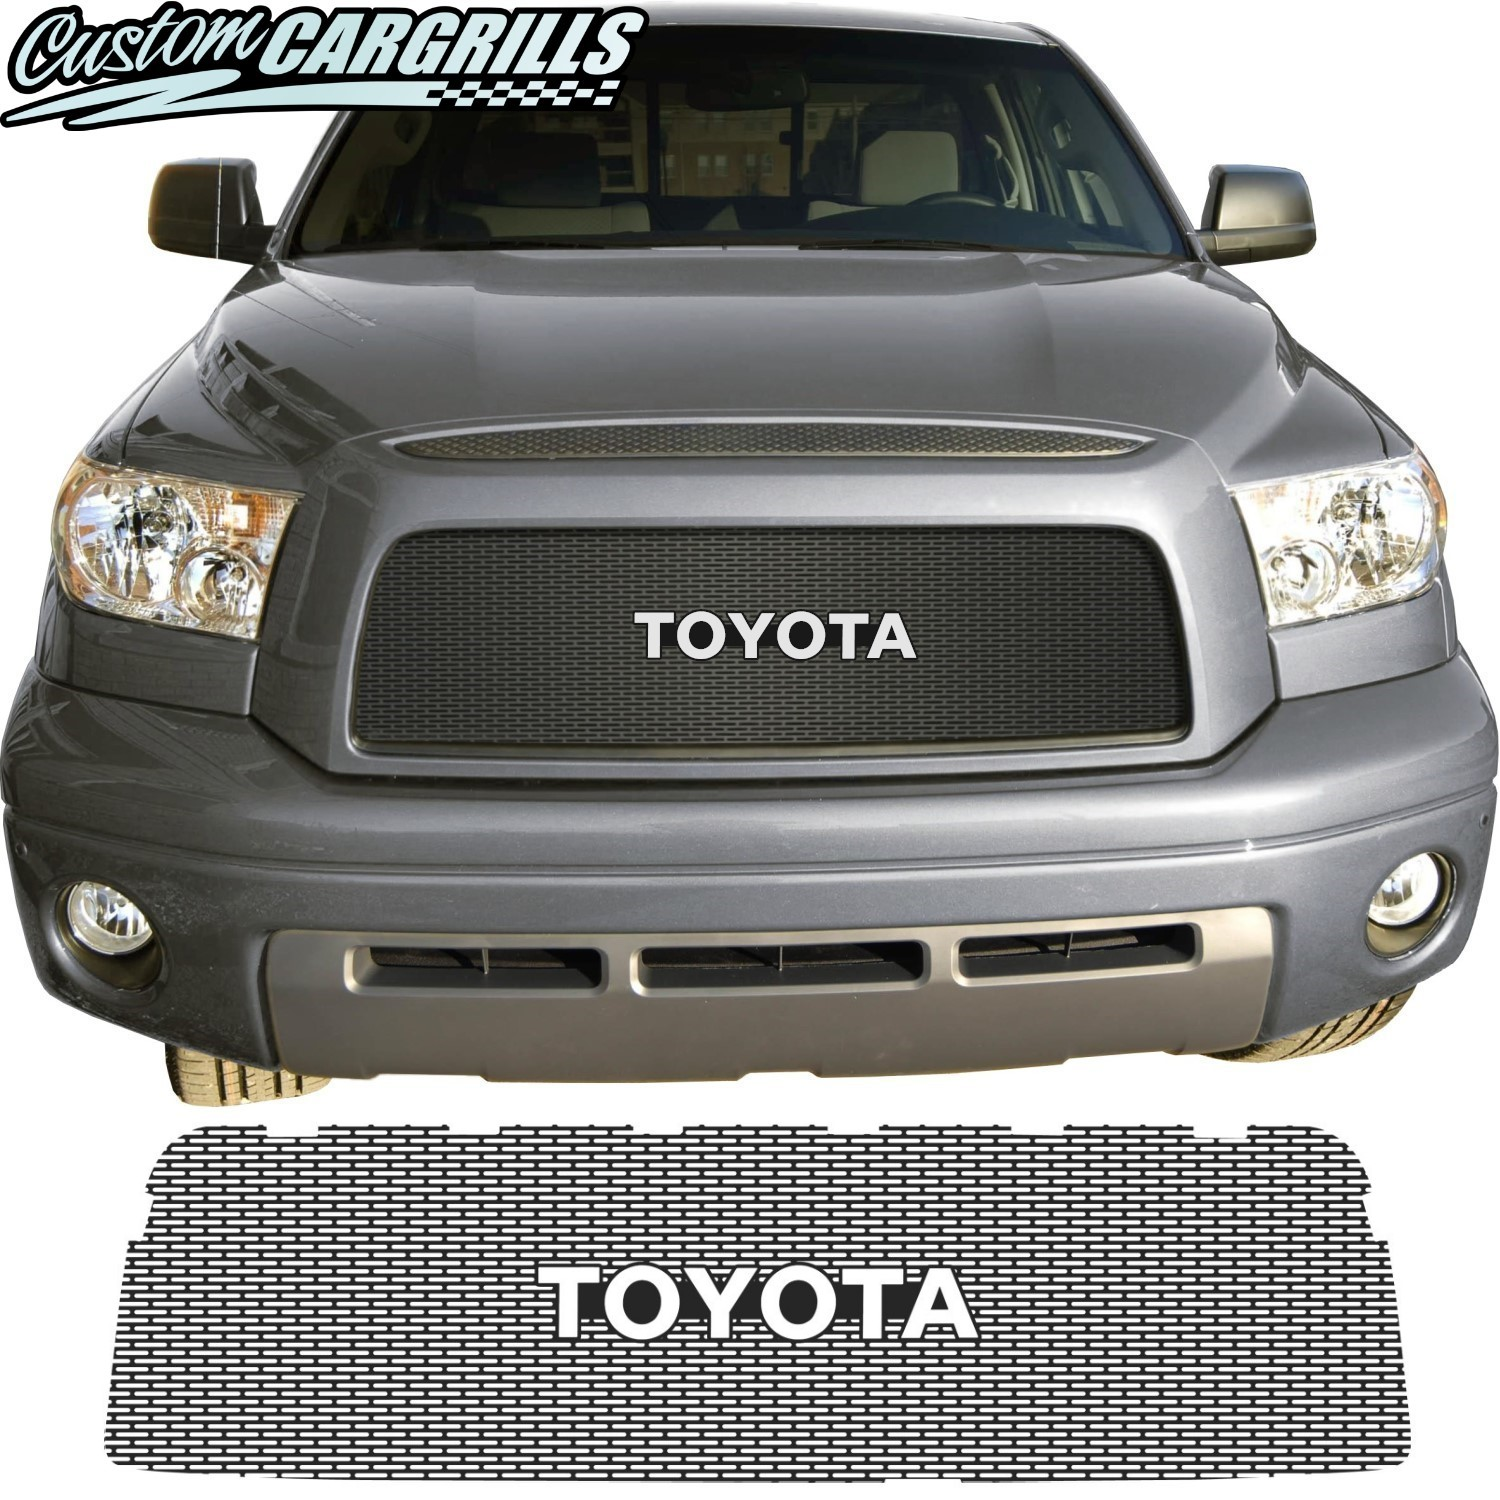 2007-09 Toyota Tundra Mesh Grills by customcargrills